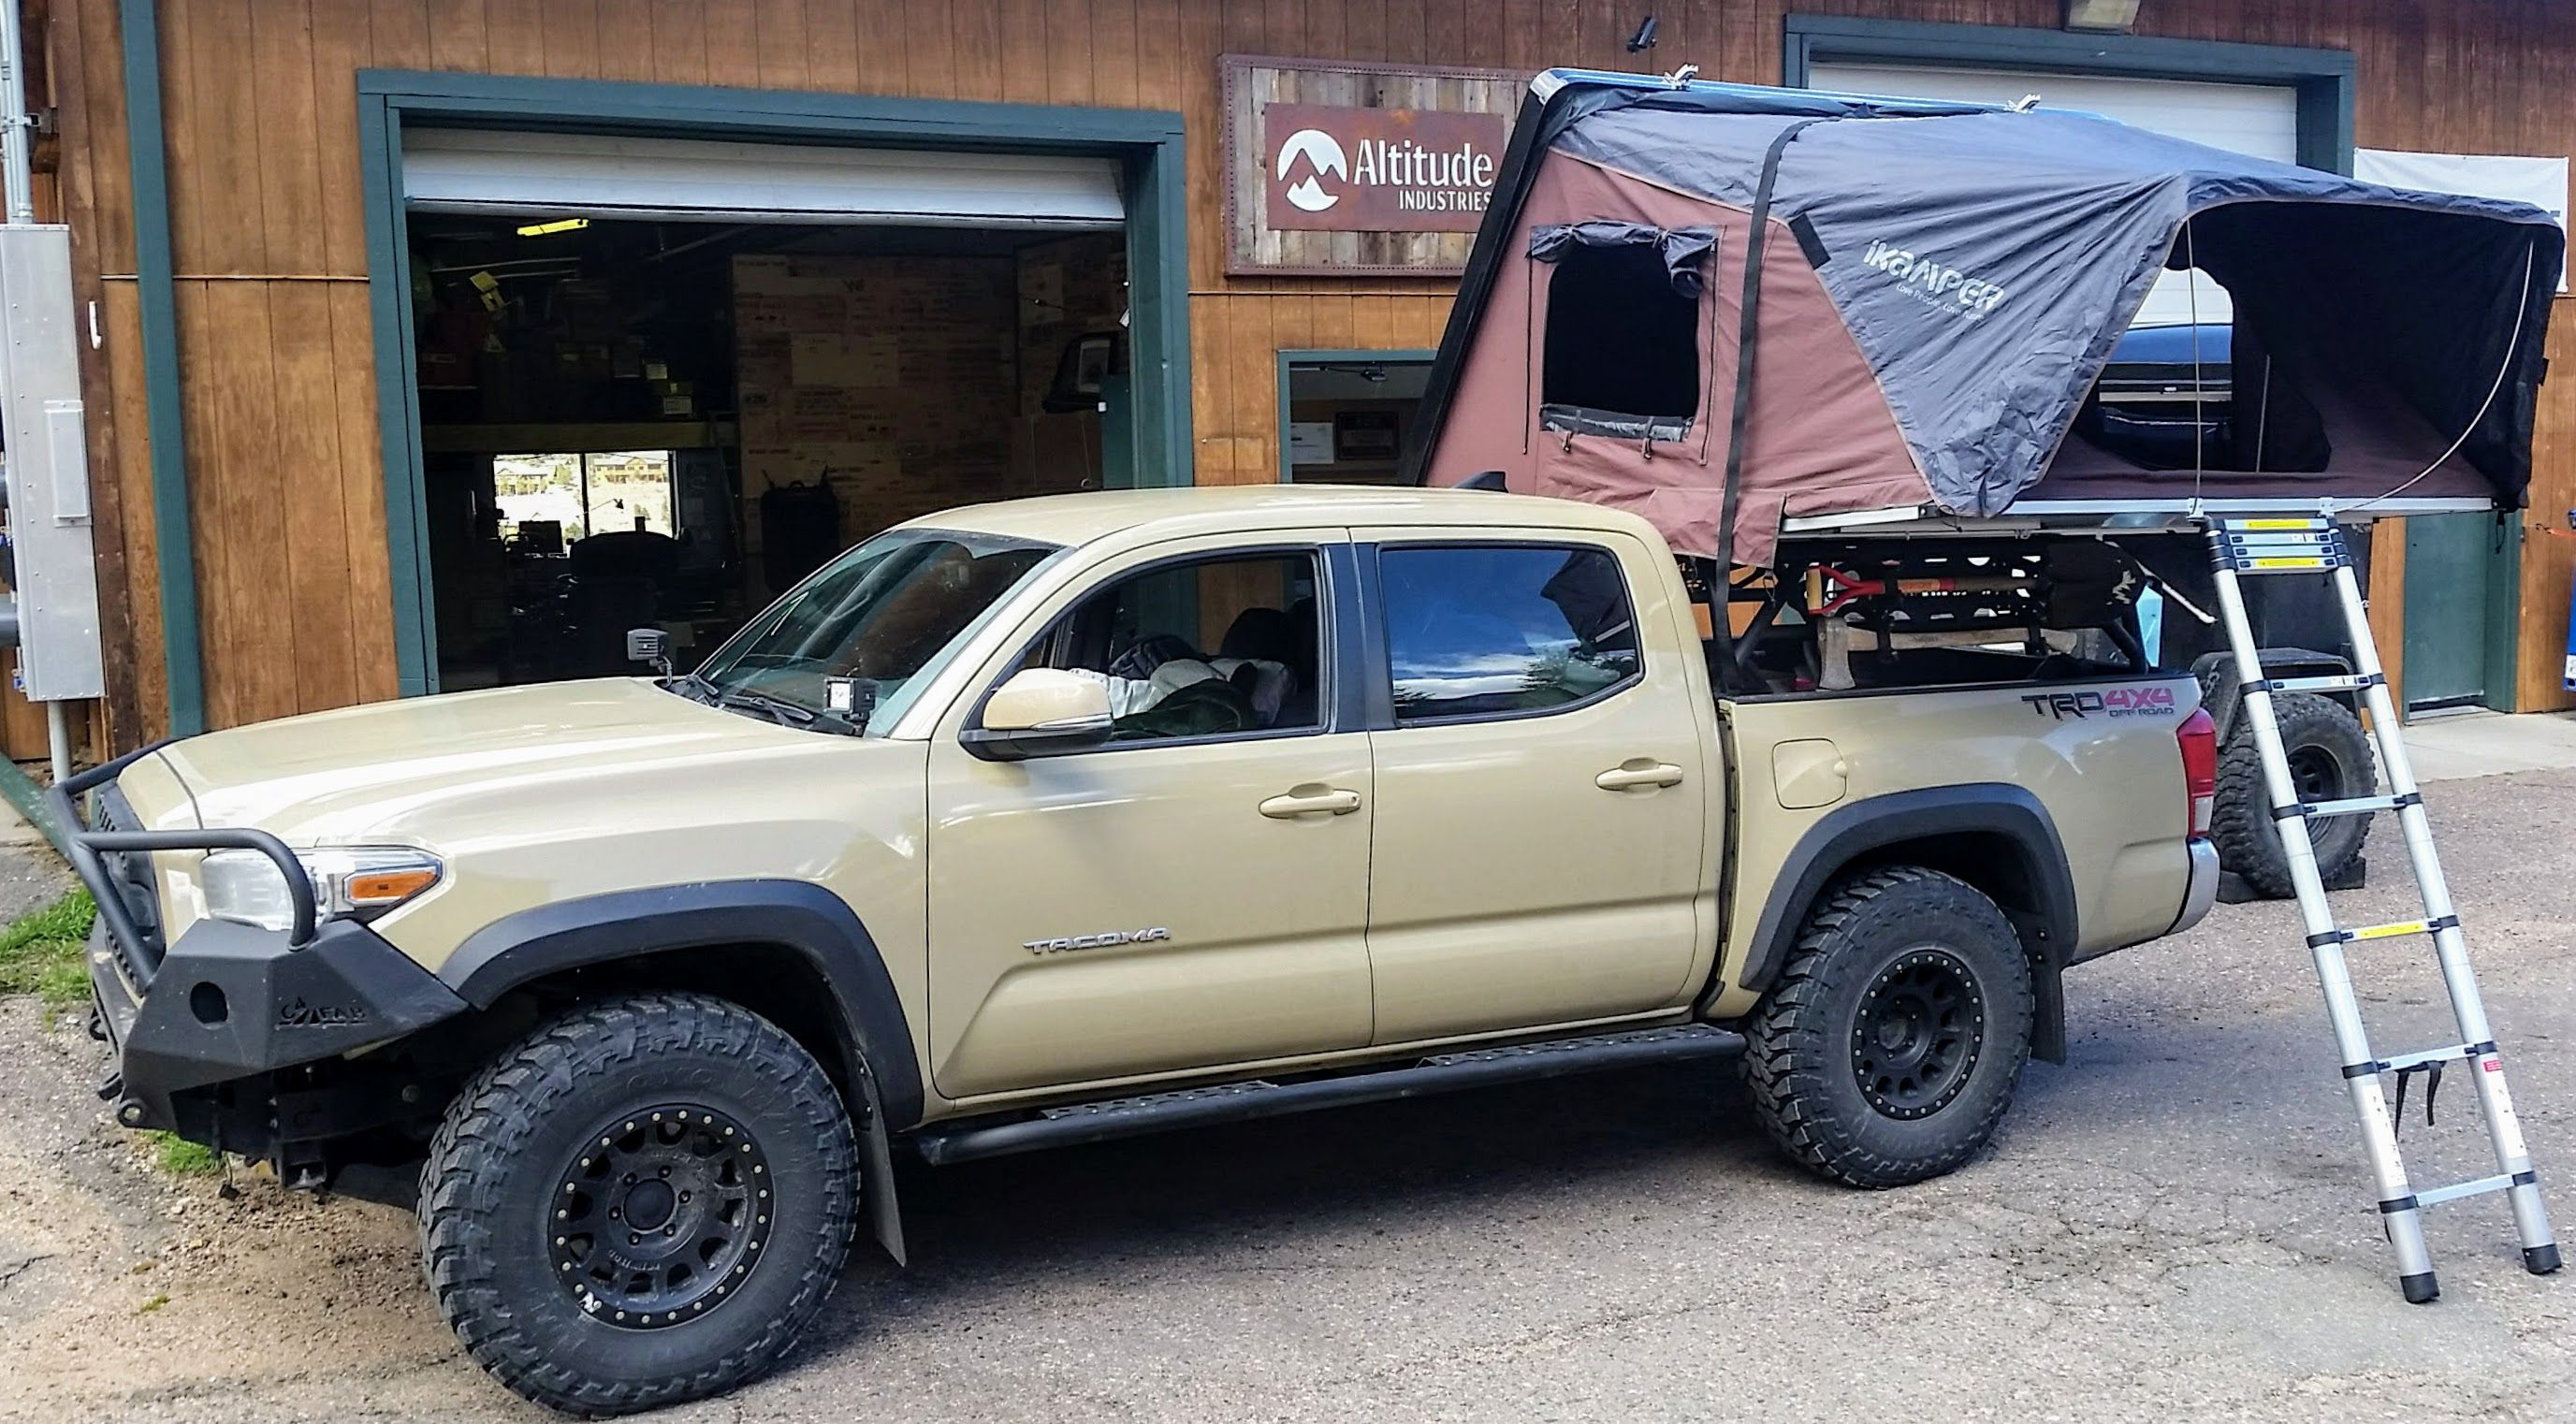 Tacoma Double Cab With Bedrack And Ikamper Skycamp Rooftop Tent Roof Top Tent Overland Gear Tacoma Truck